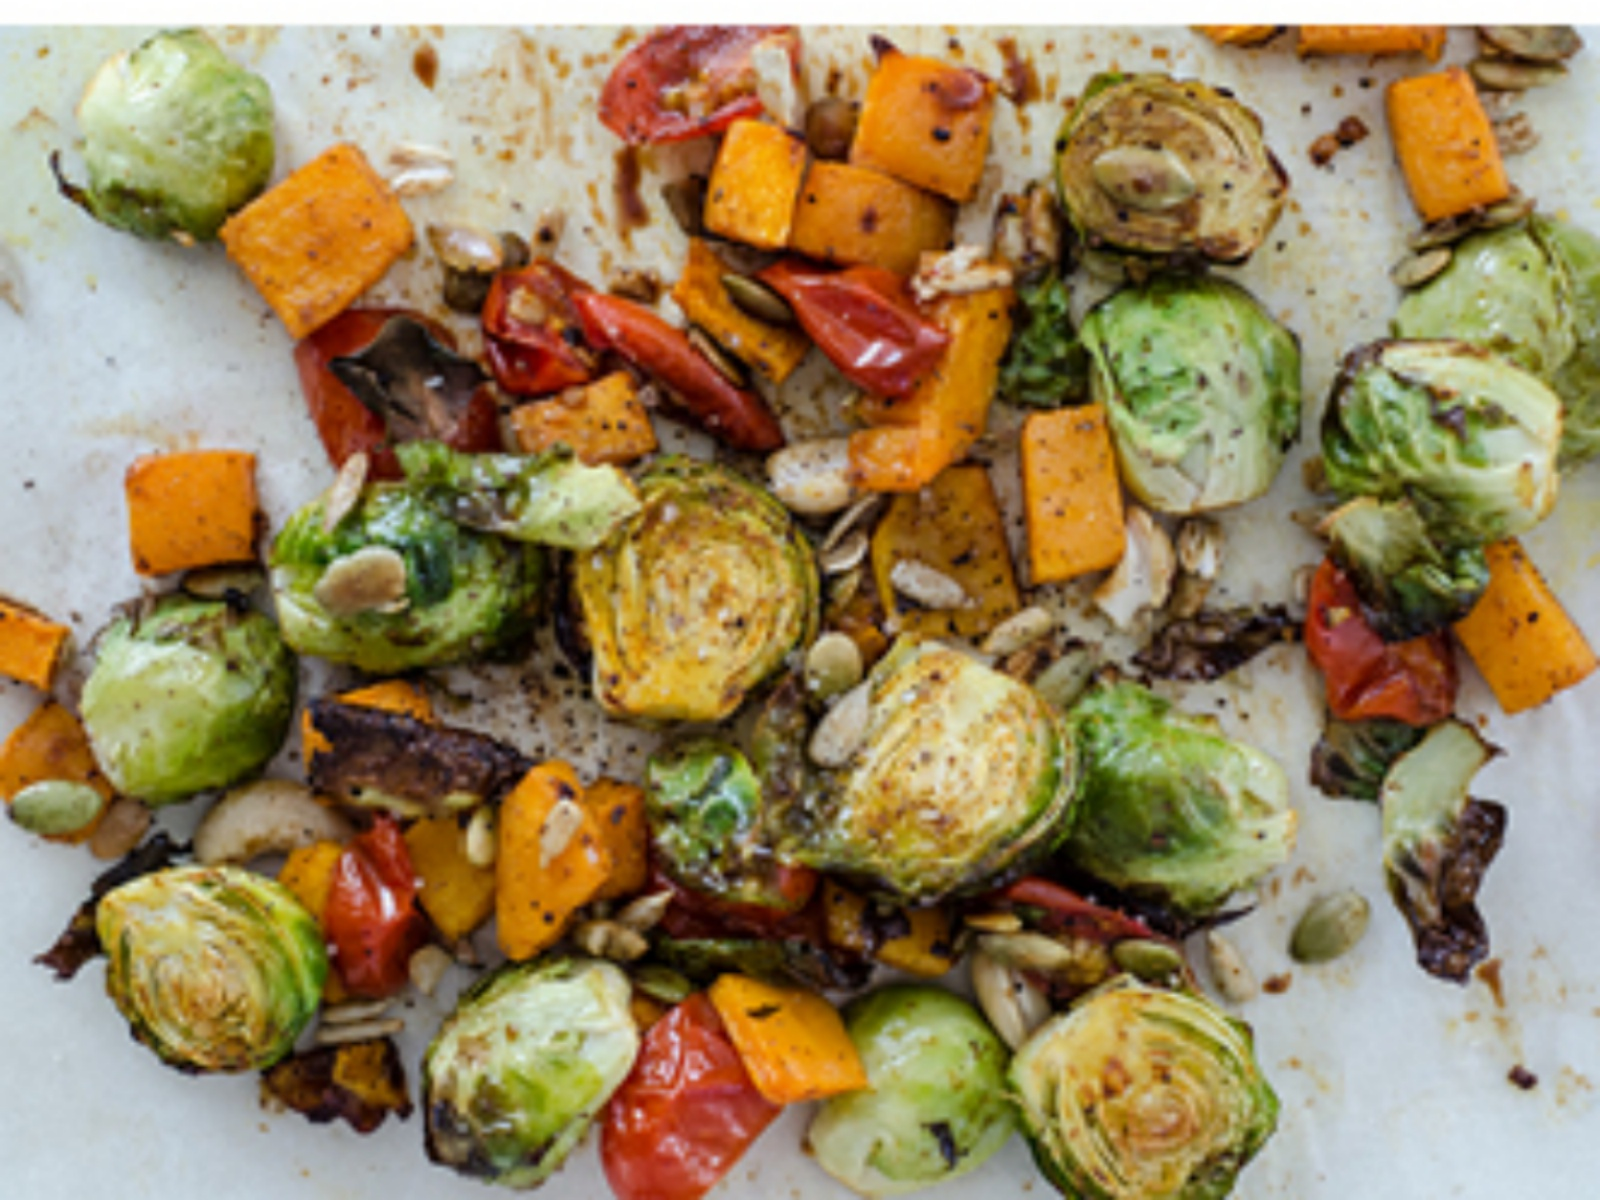 Roasted Brussels Sprouts with Pumpkin, Tomatoes, Toasted Seeds and Balsamic Vinegar